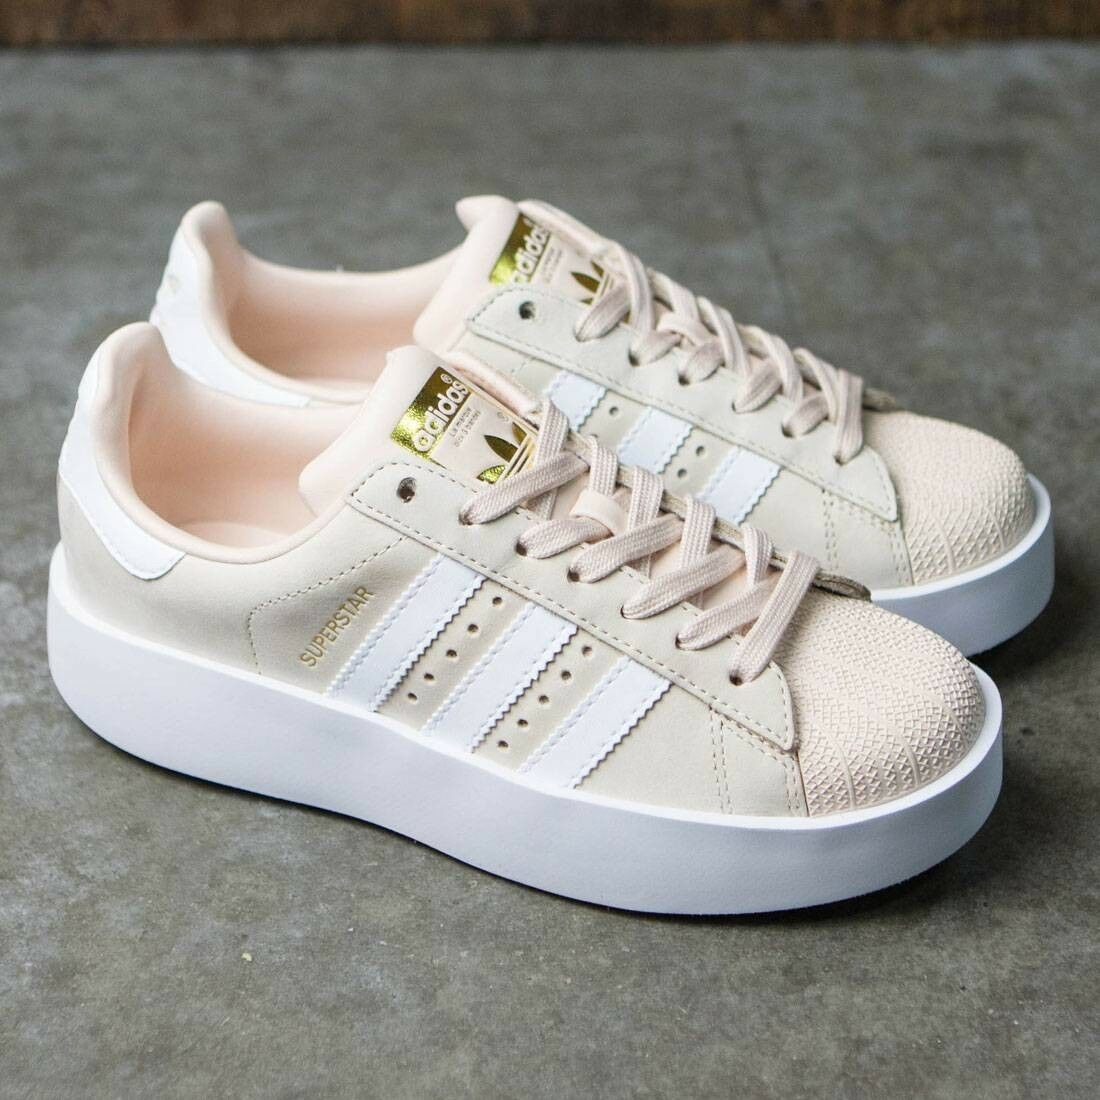 adidas Originals Superstar Bold W CG2886 Women's Sneakers. 100% AUTHENTIC!!!